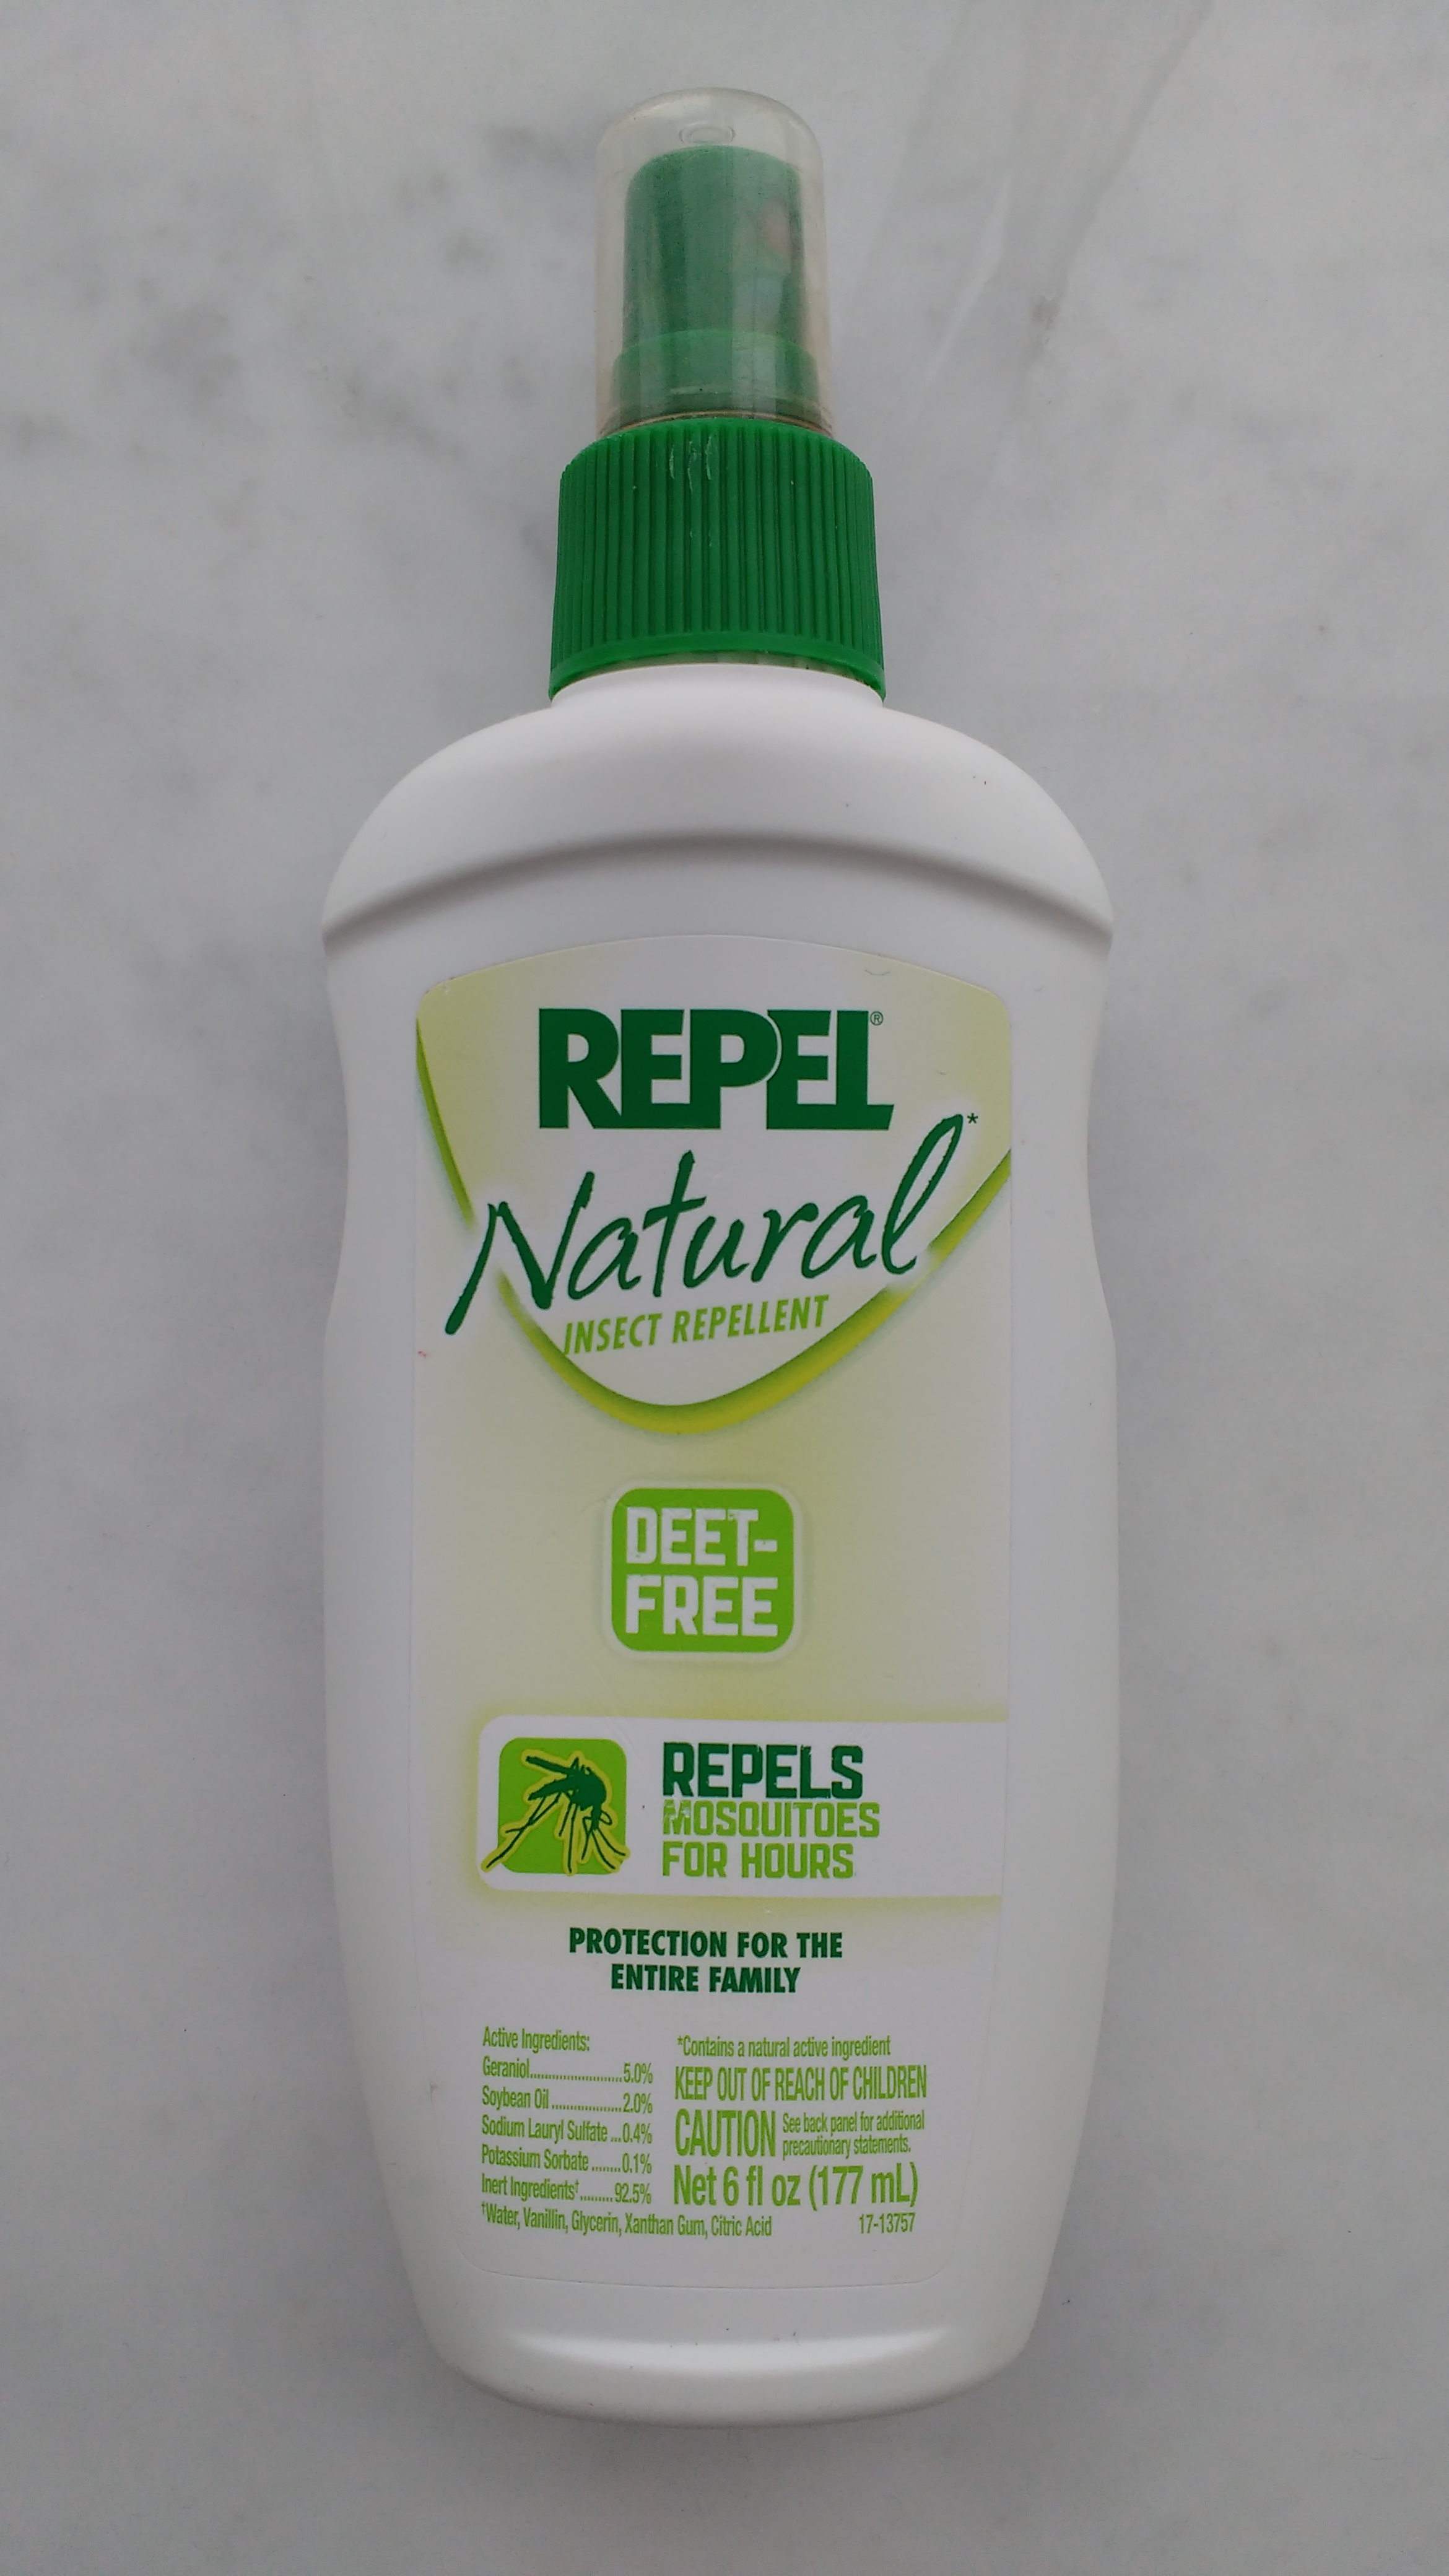 Deet-free. Protection for the entire family but keep out of reach of kids...